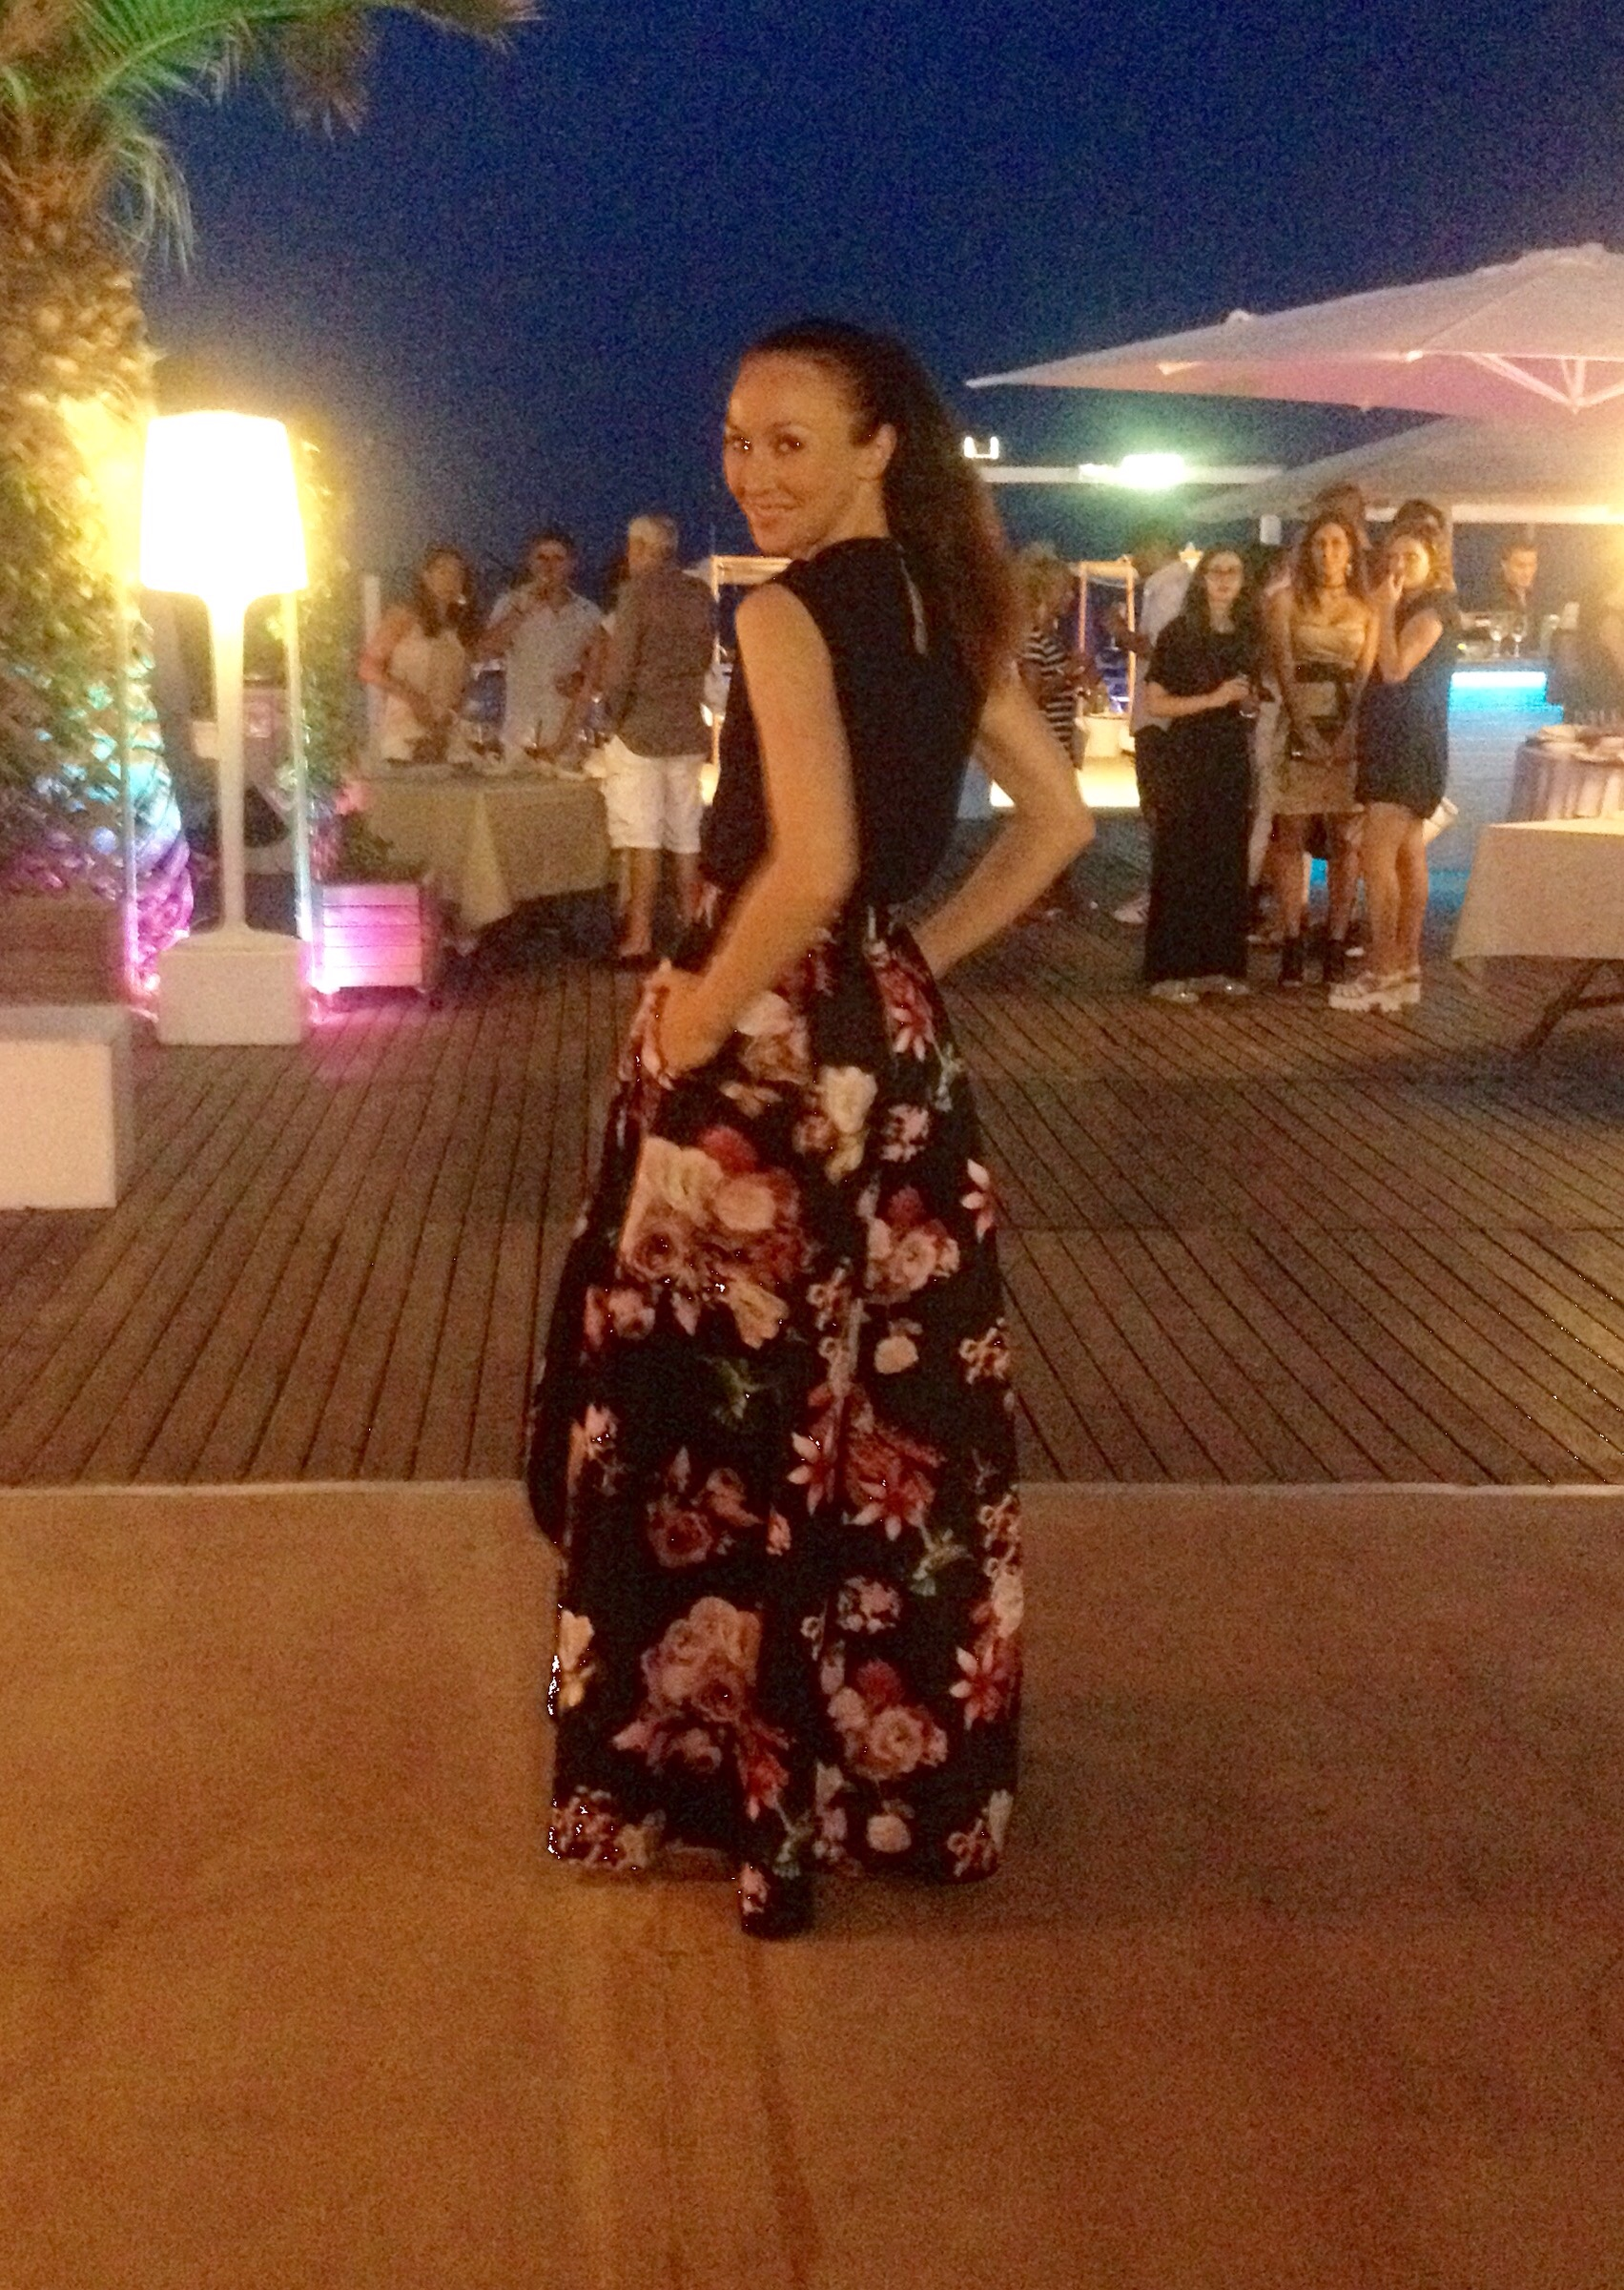 My outfit from the Pinko show, a beautiful floor length floral print skirt and silk blouse with ruffle detail.